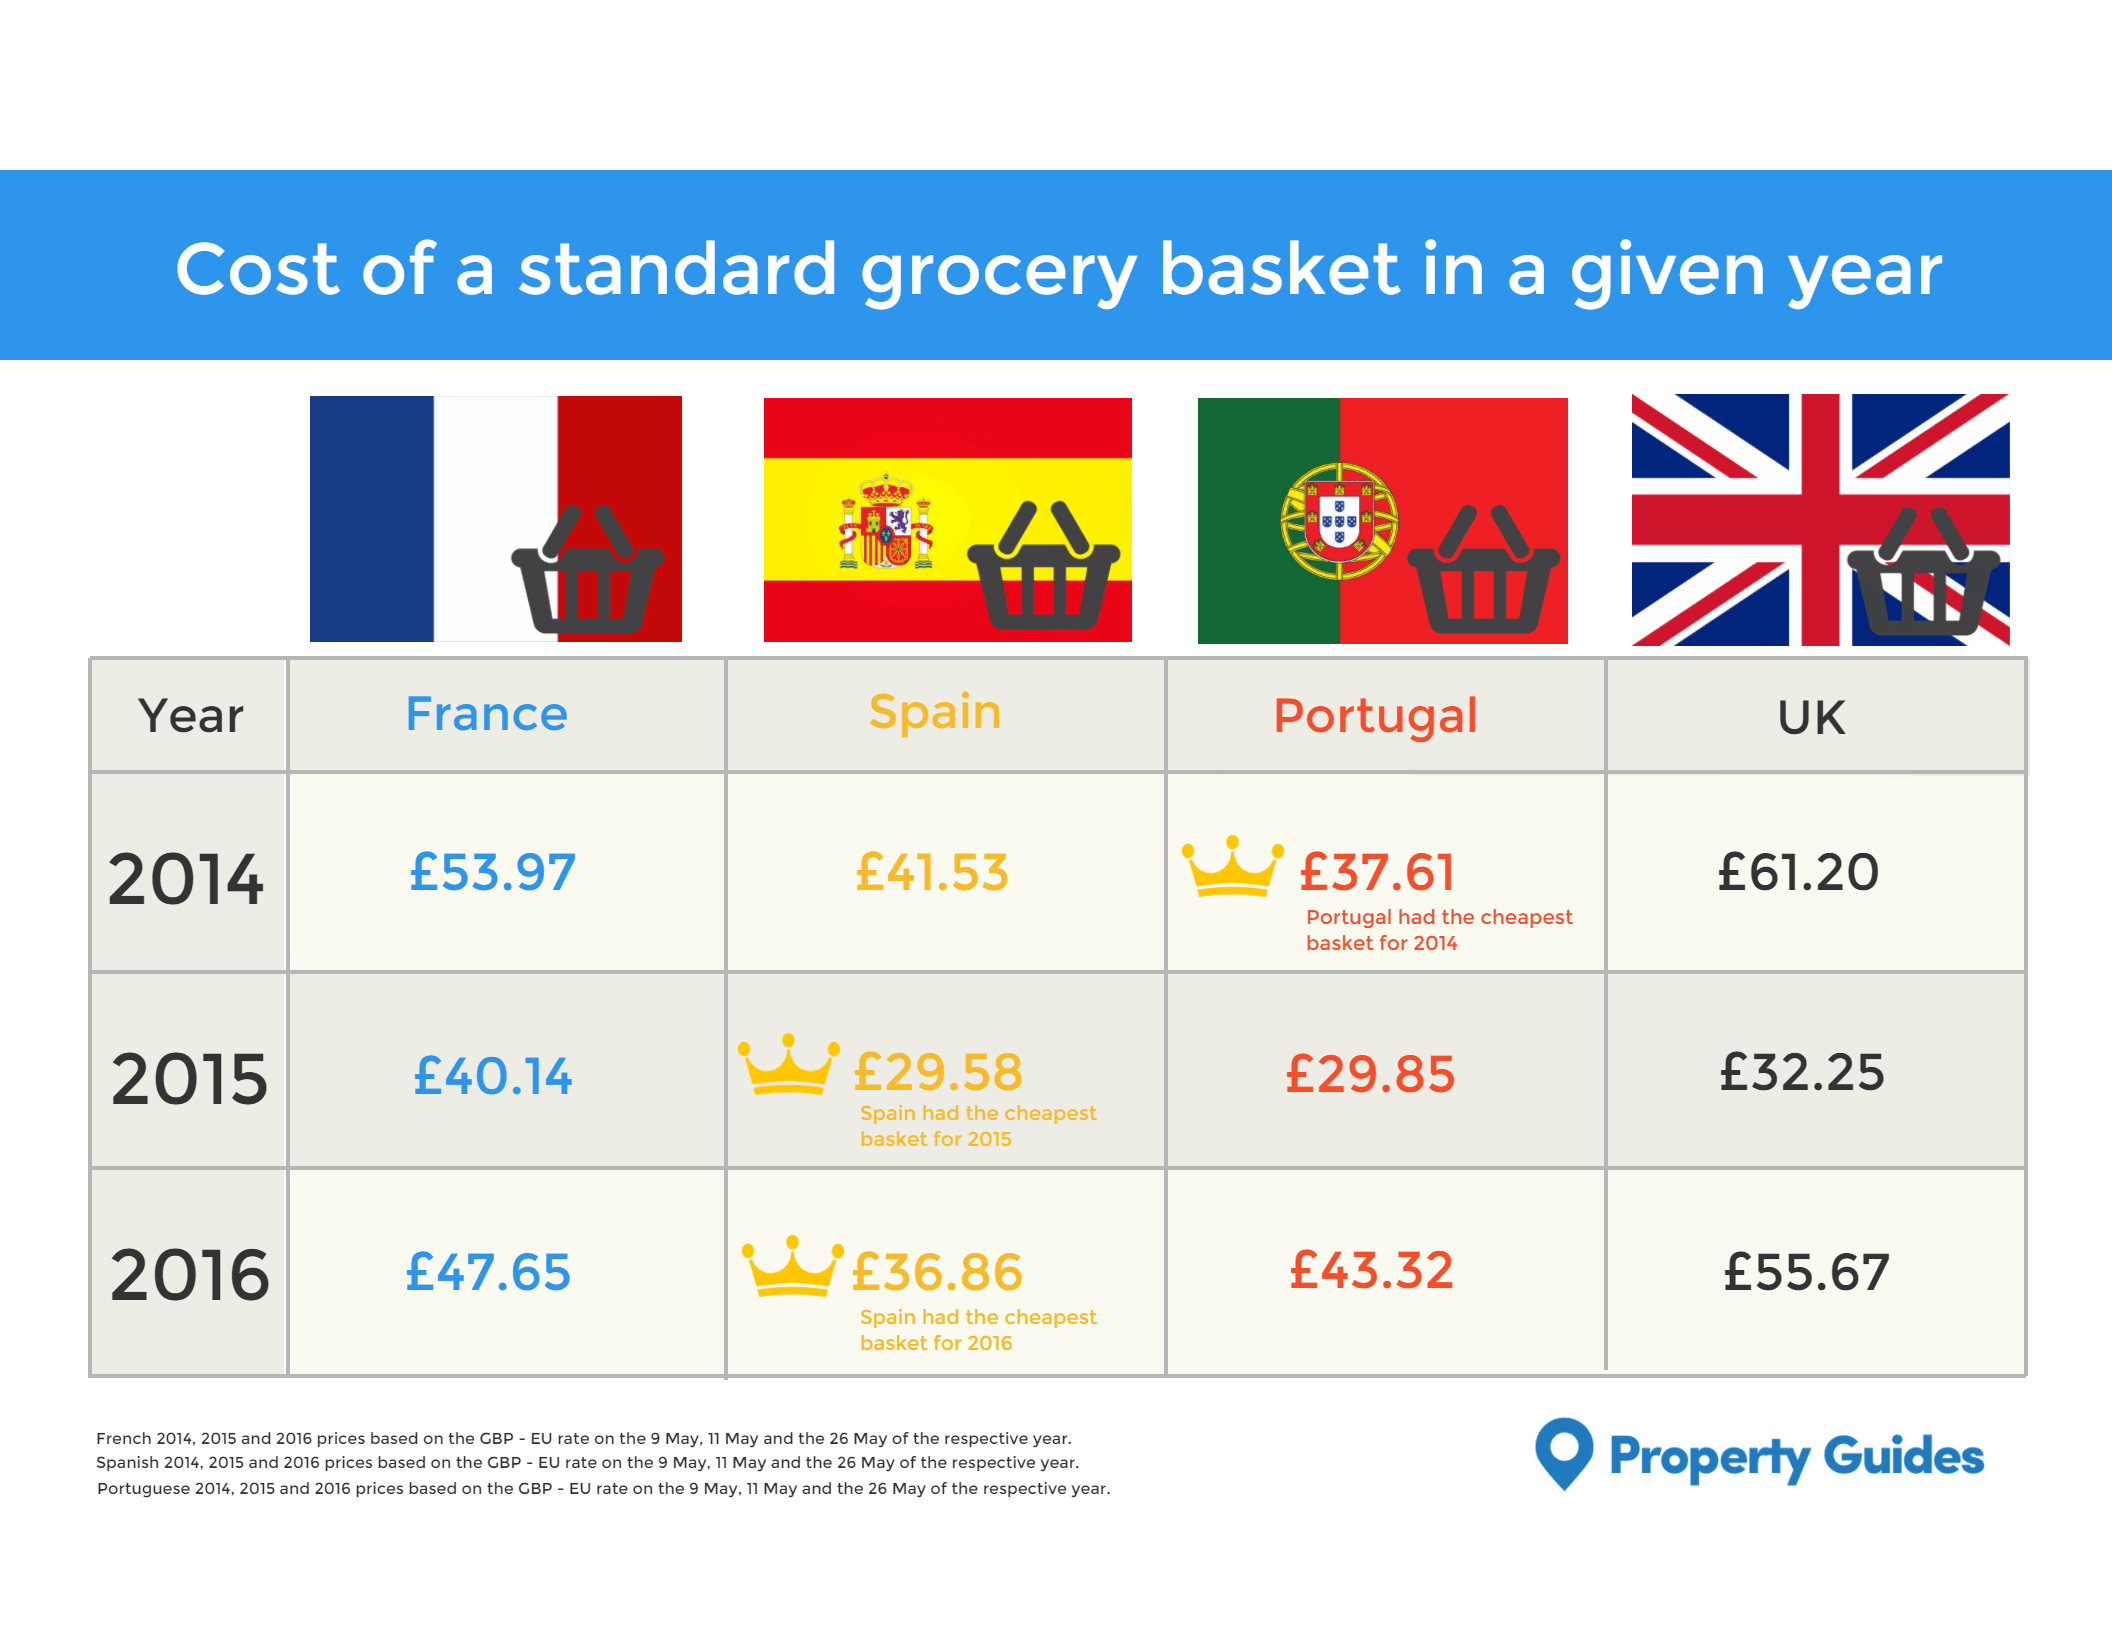 How Does The Cost Of Living Compare In France Spain And Portugal To The UK